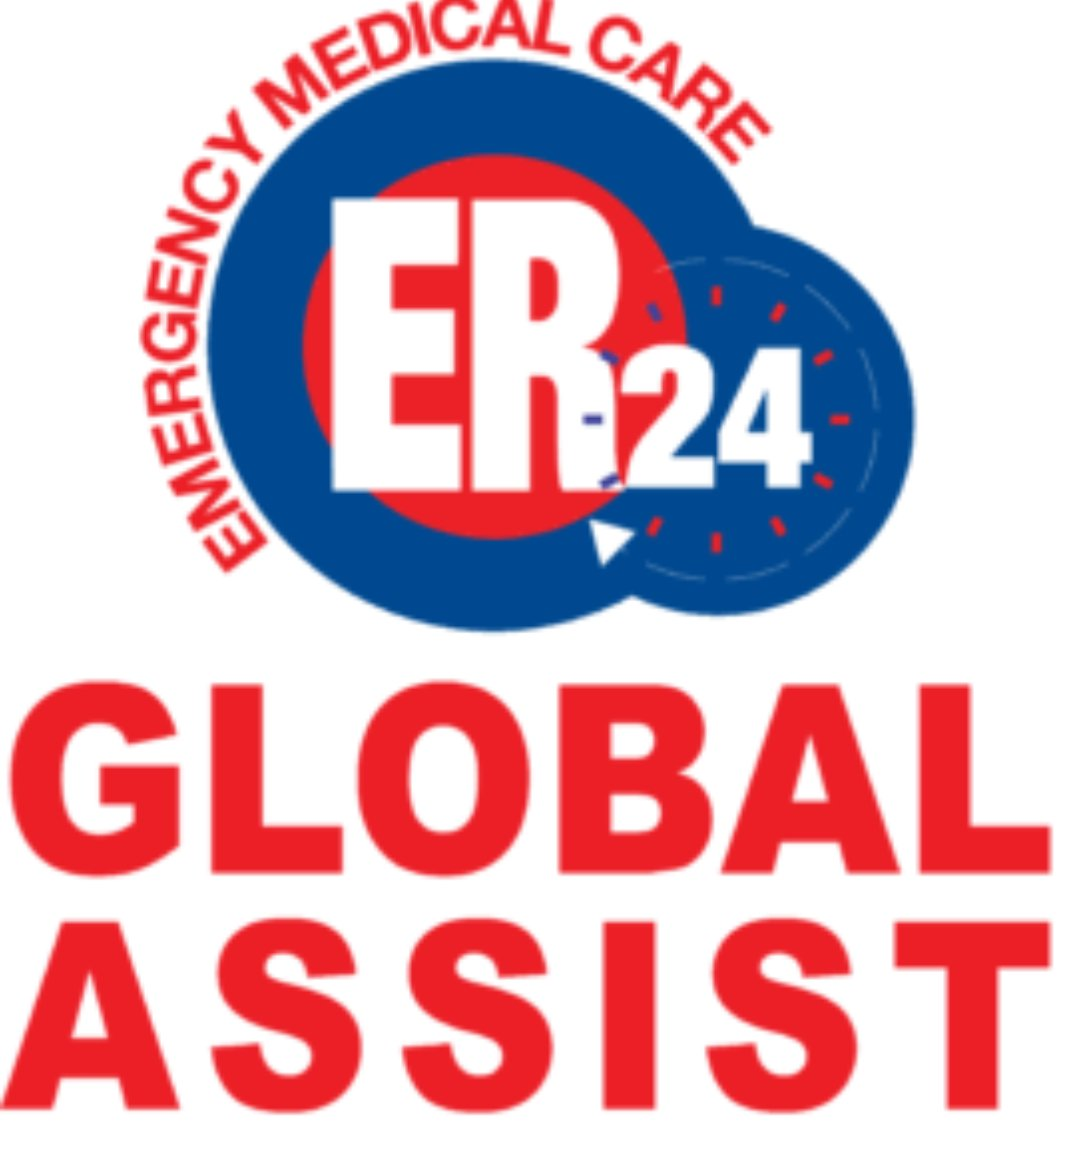 ER 24 logo-test sample.jpeg